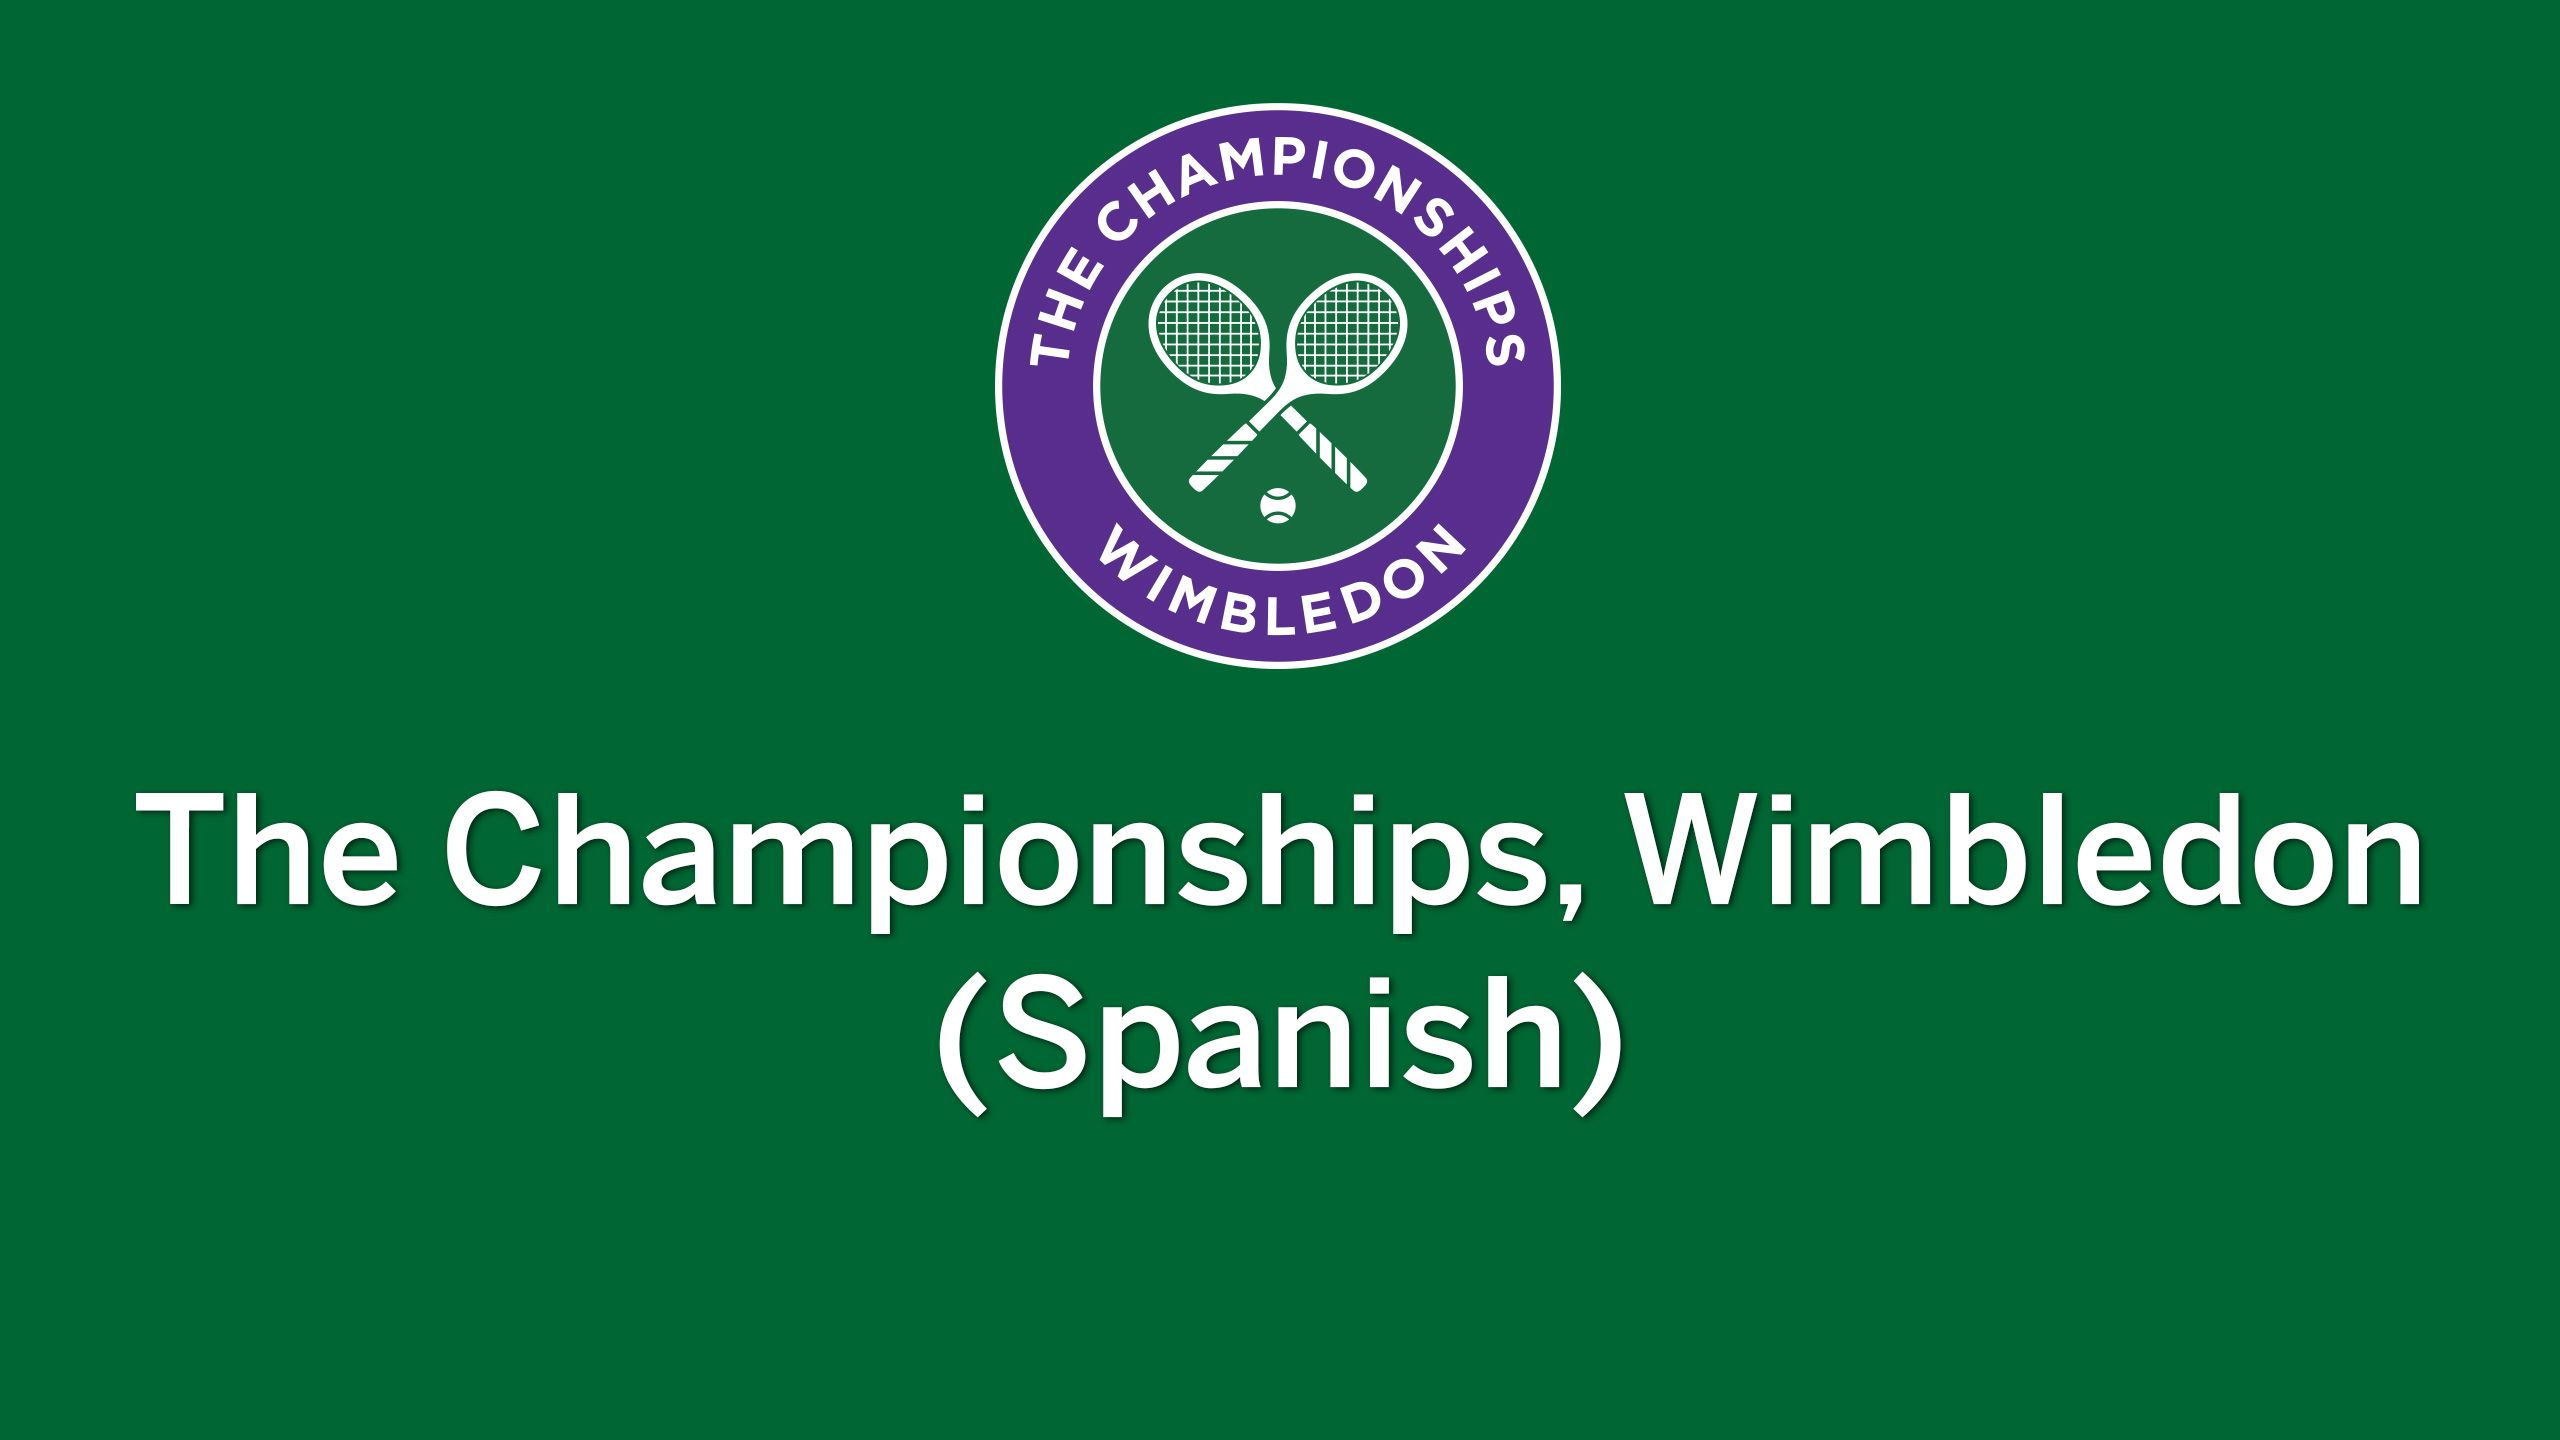 Wimbledon Tennis Championships - In Spanish (Ladies' Semifinals)